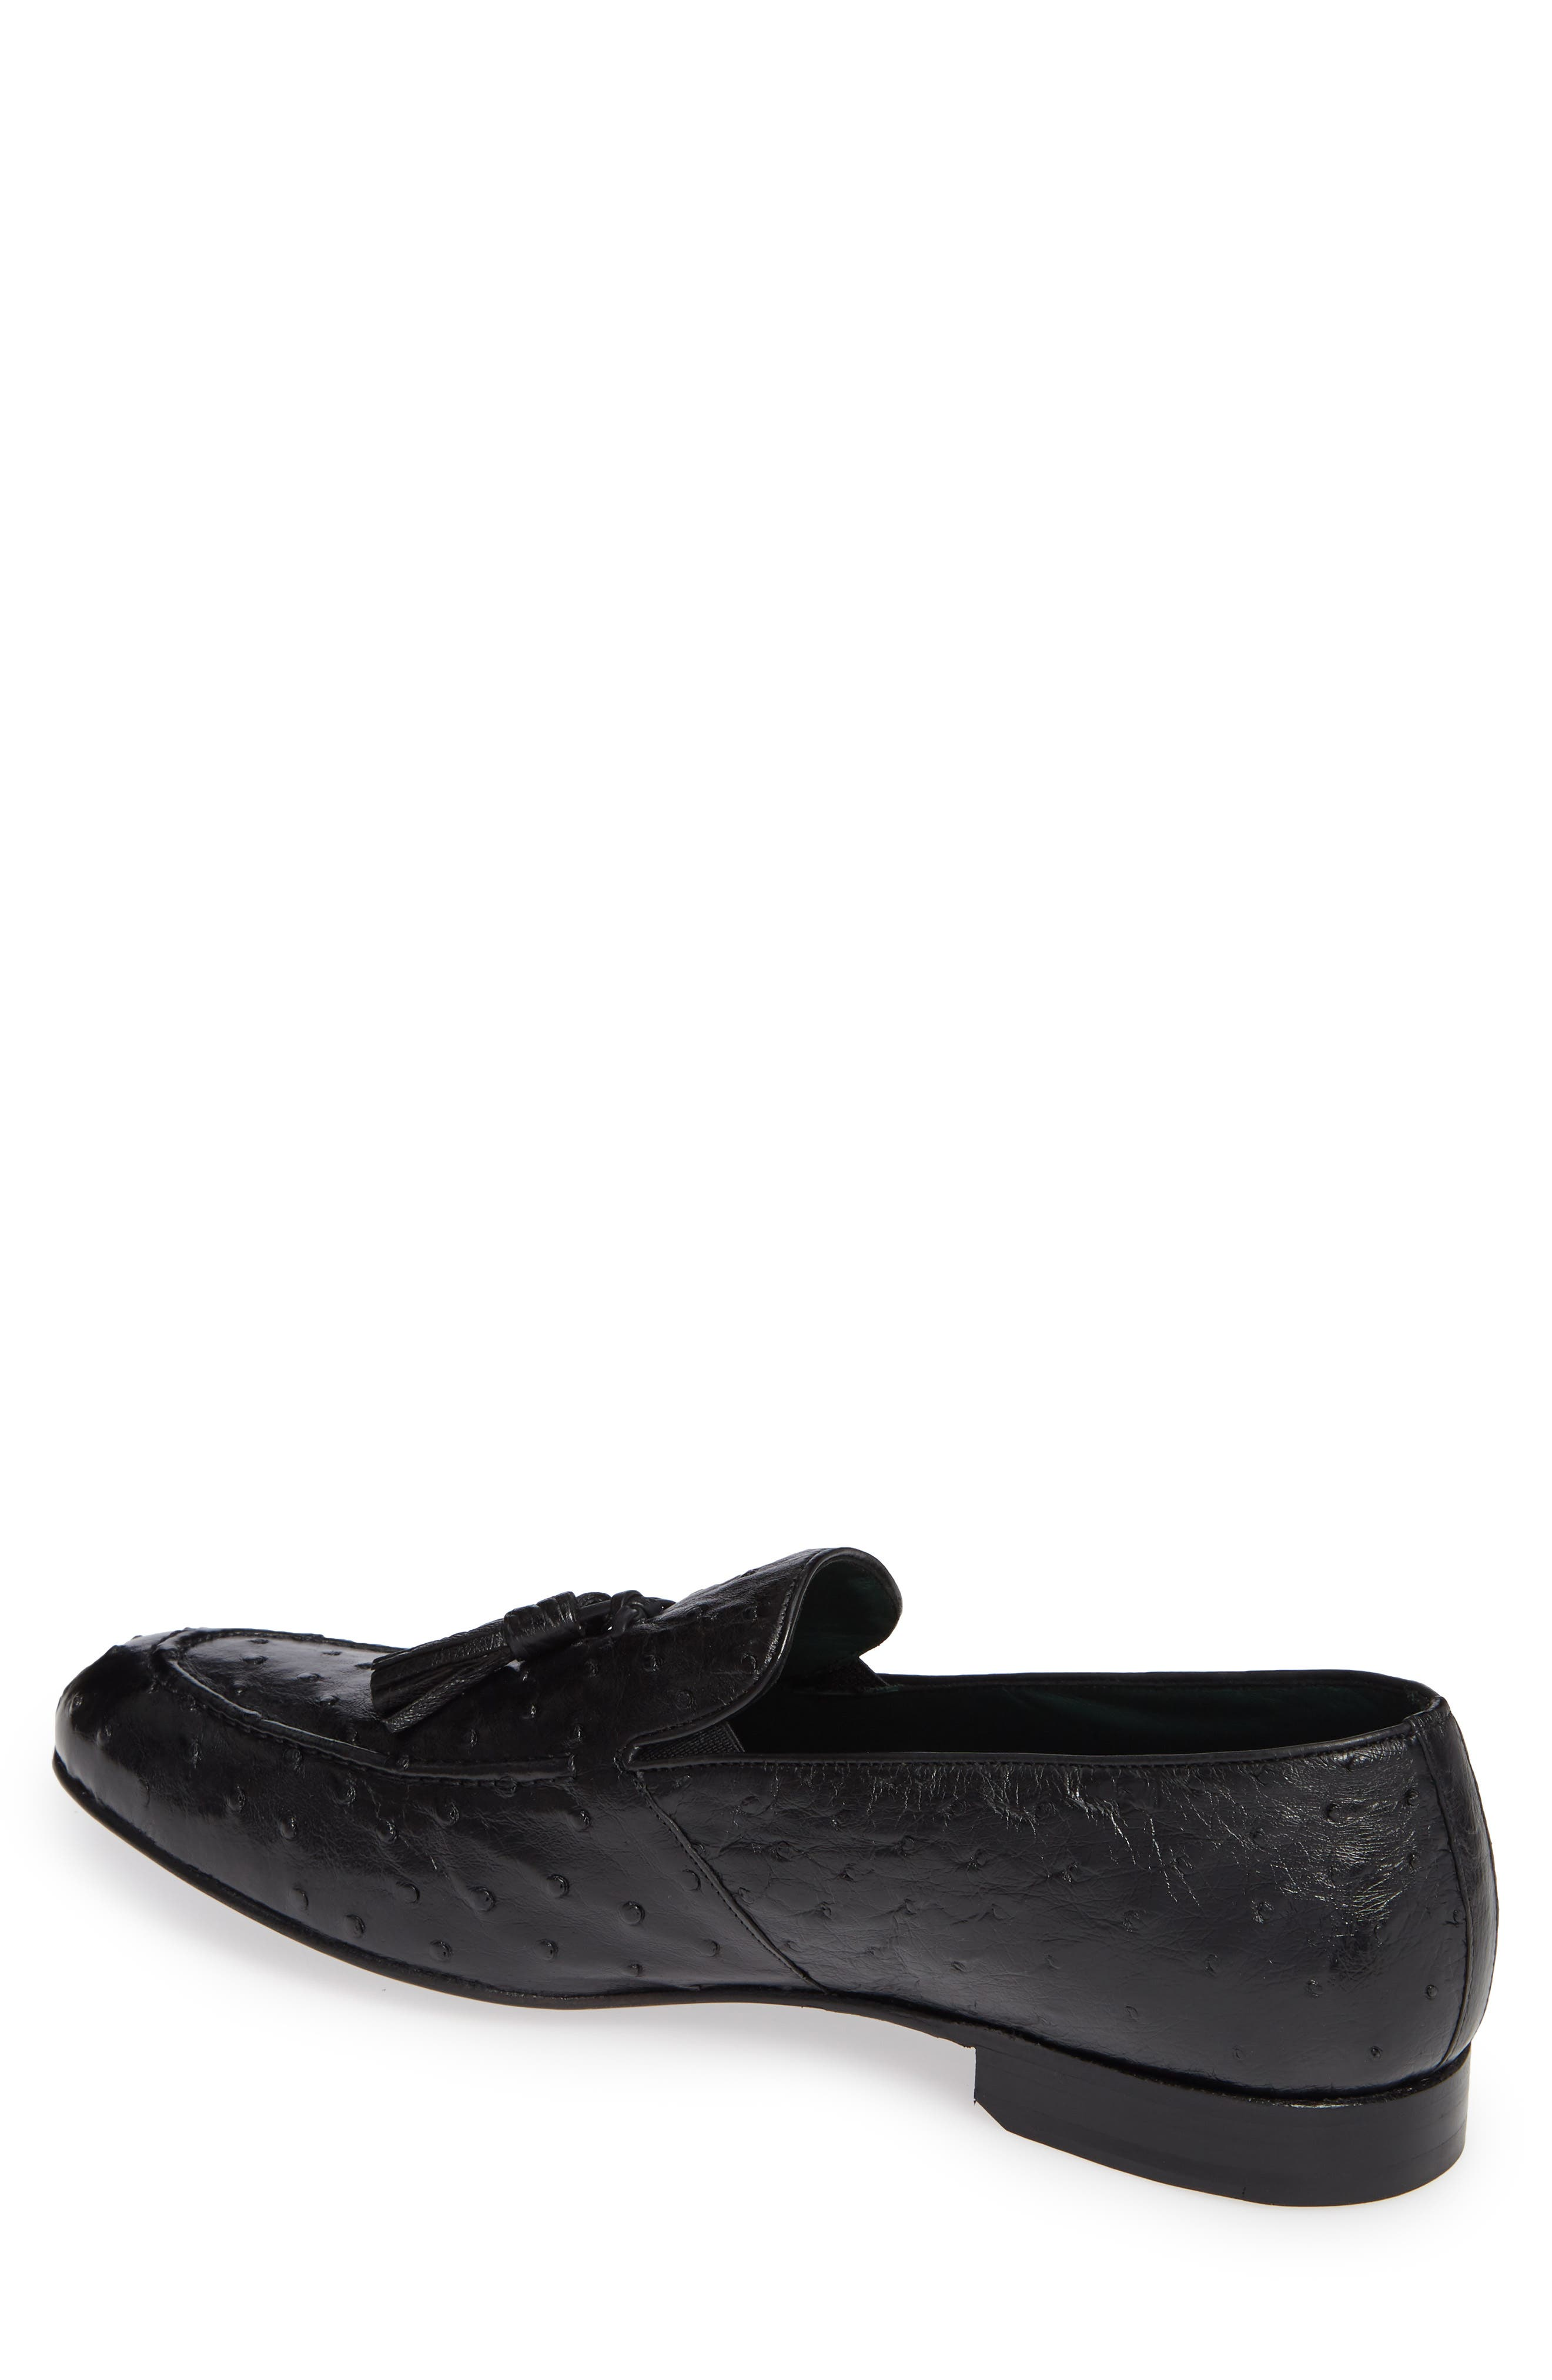 Conte Tassel Ostrich Leather Loafer,                             Alternate thumbnail 2, color,                             BLACK LEATHER